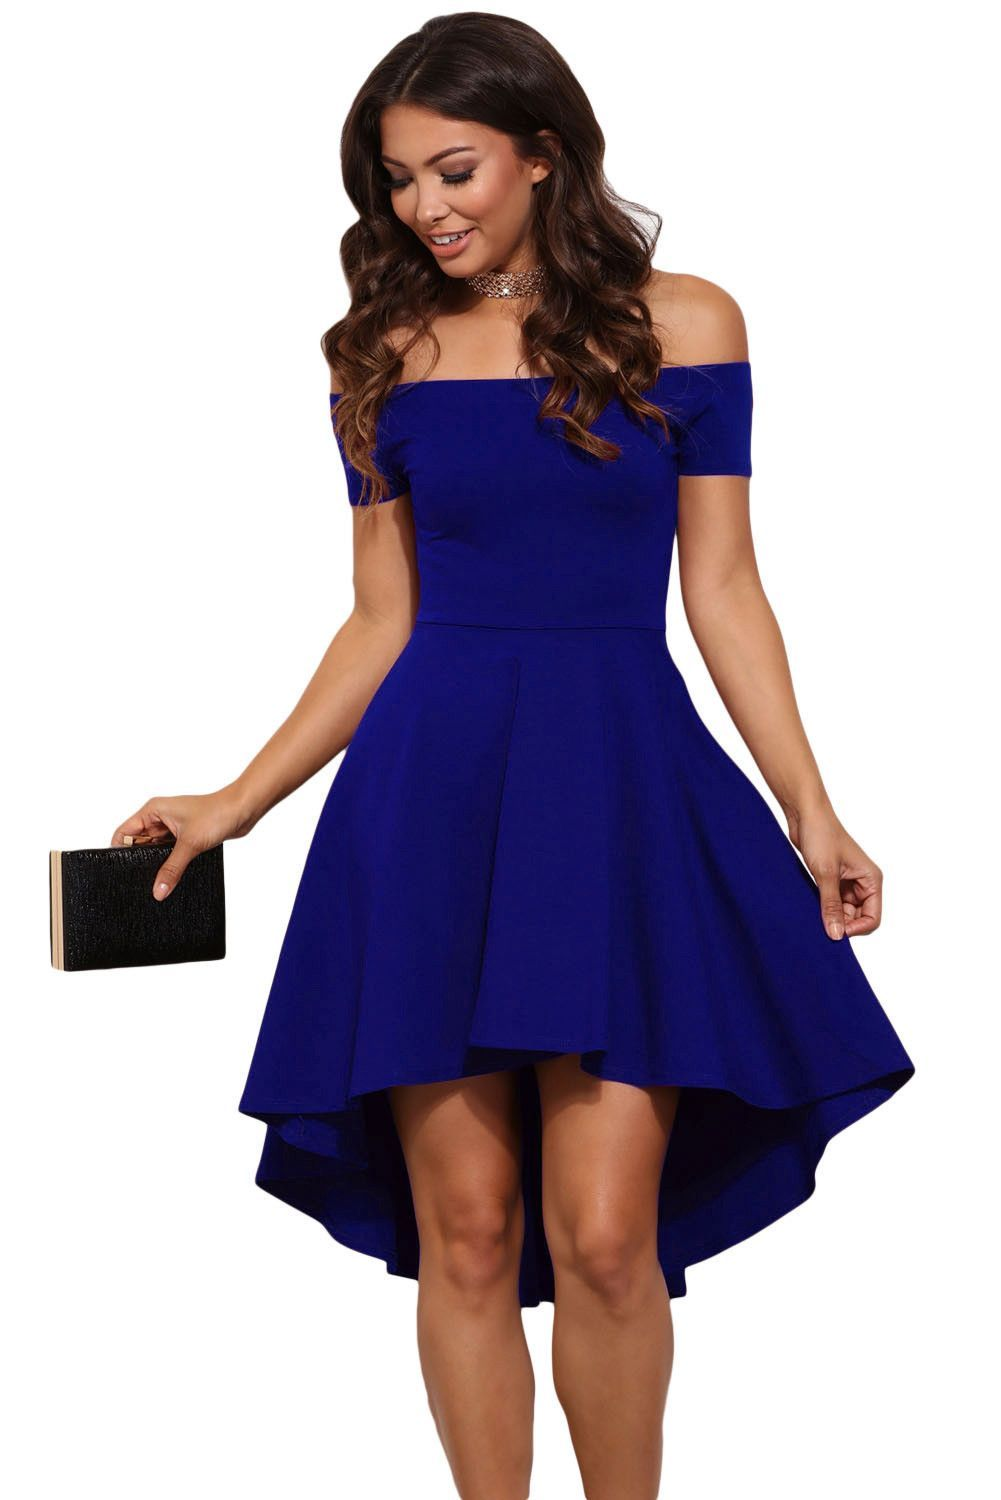 Blue All The Rage Skater High Low Cocktail Dress https://www.modeshe ...